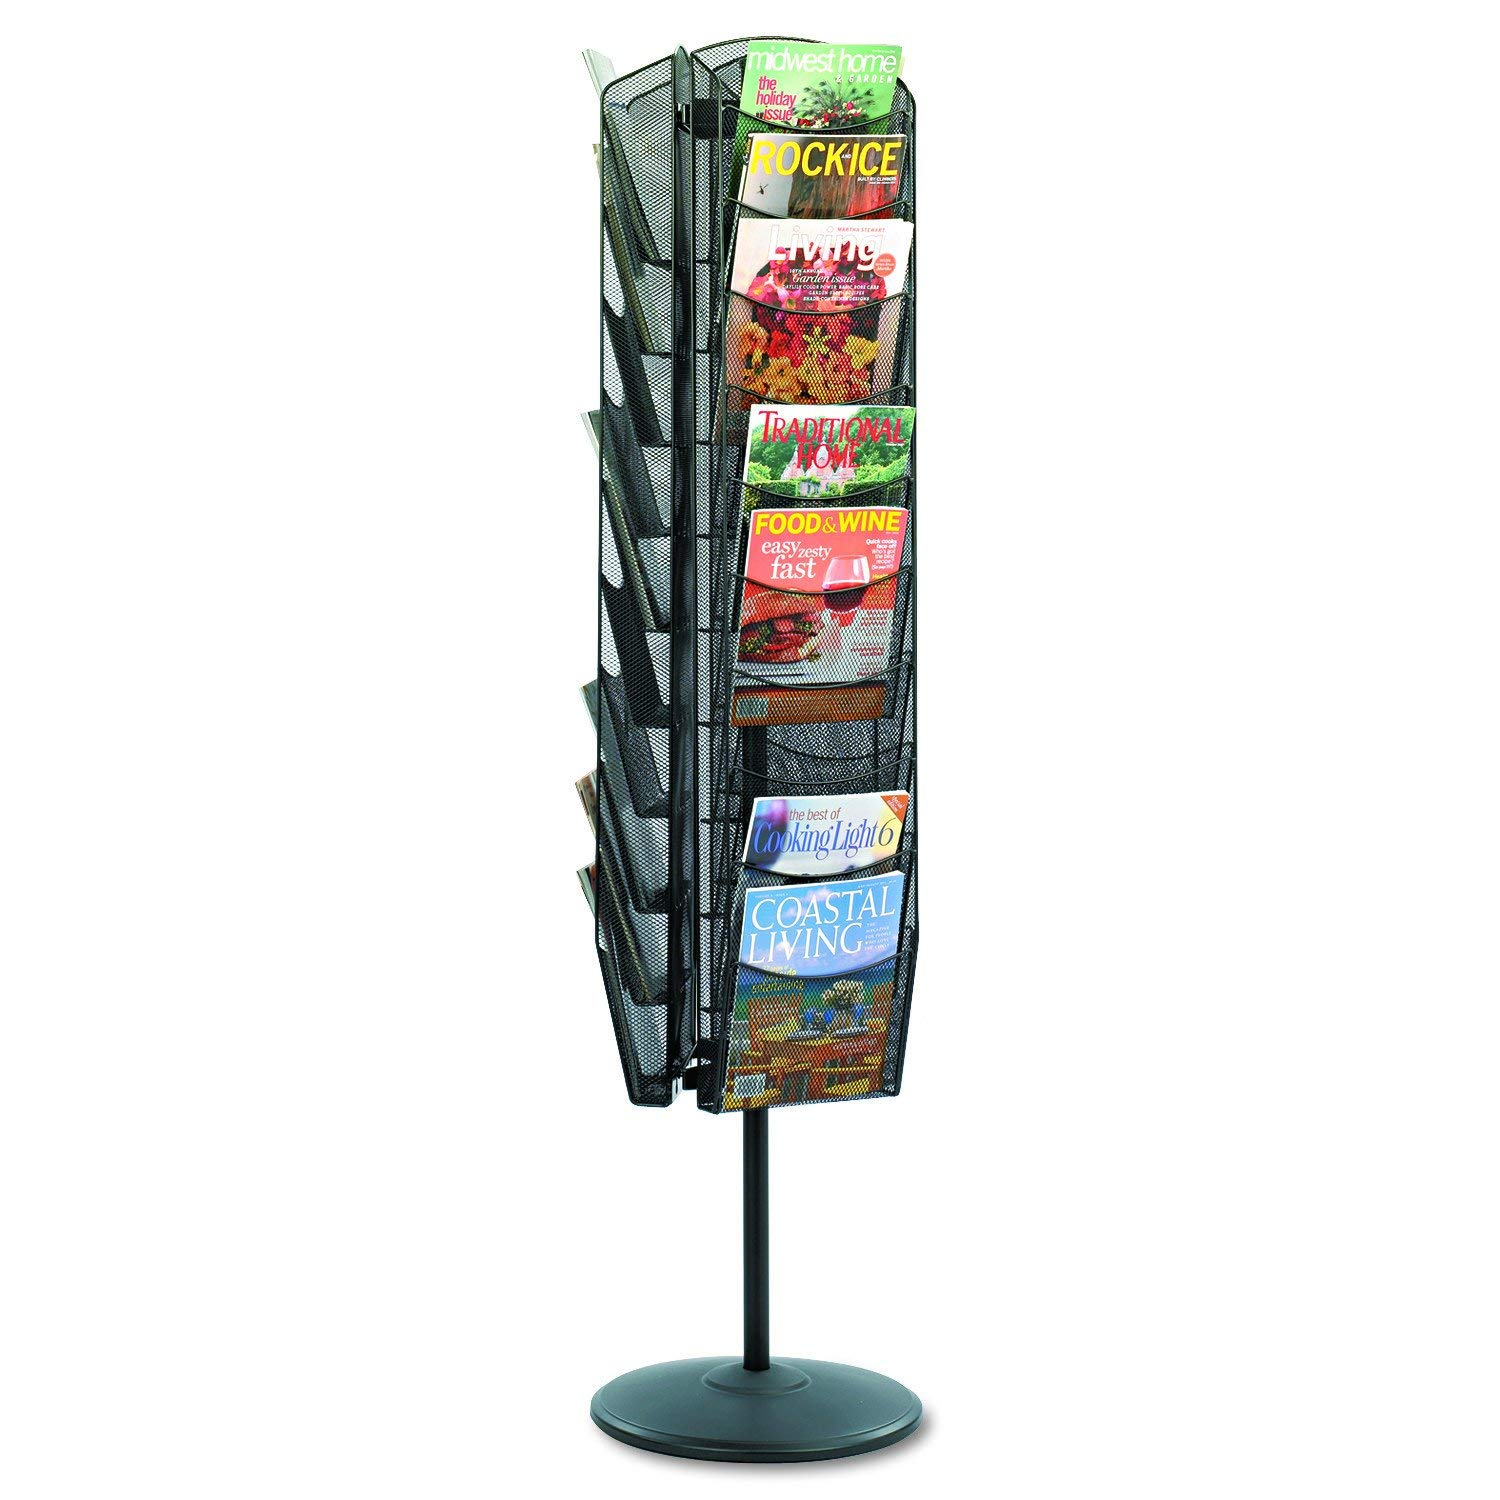 Safco Products Onyx Mesh Rotating Magazine Stand, 5577BL, Black Powder Coat Finish, Durable Steel Mesh Construction, Rotates 360 Degrees (Renewed) by Safco Products